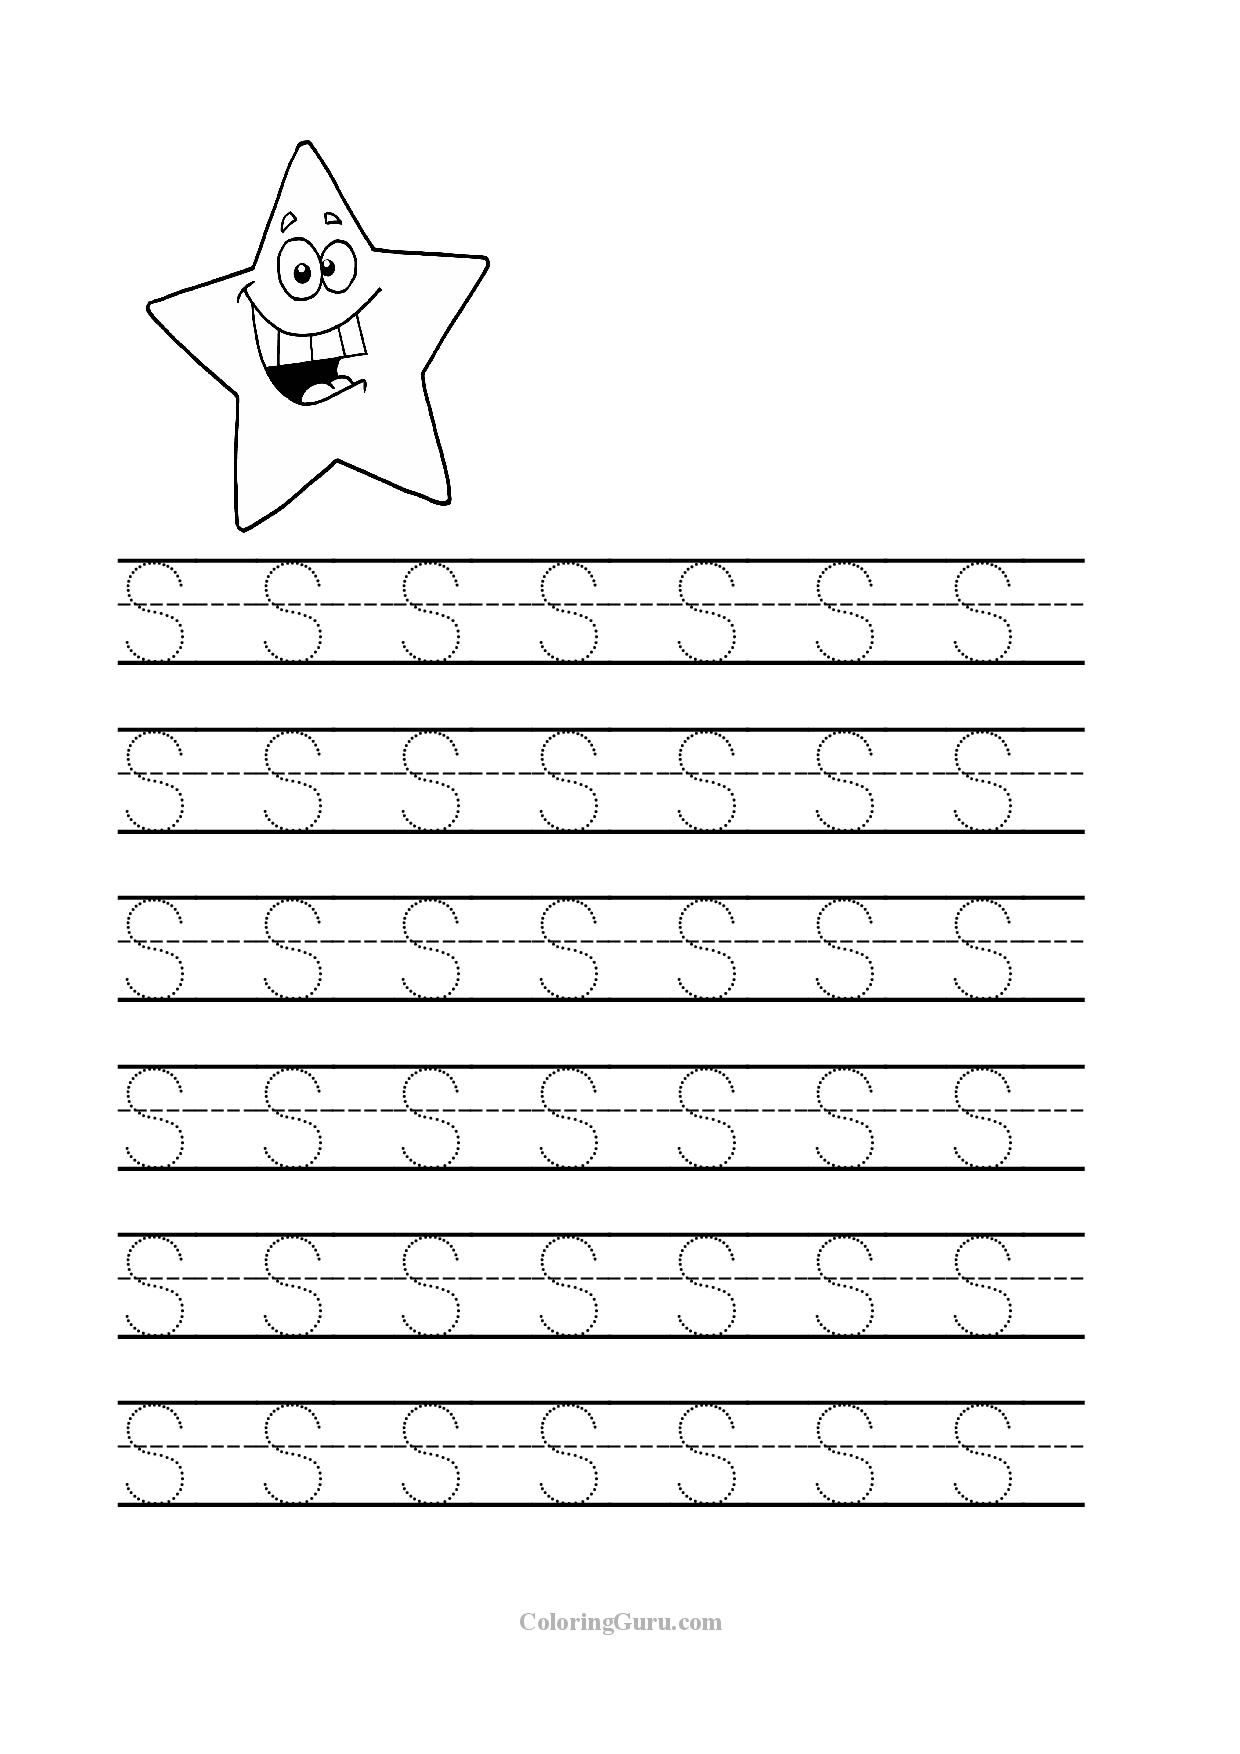 Free Printable Tracing Letter S Worksheets For Preschool throughout Tracing Letters For Kindergarten